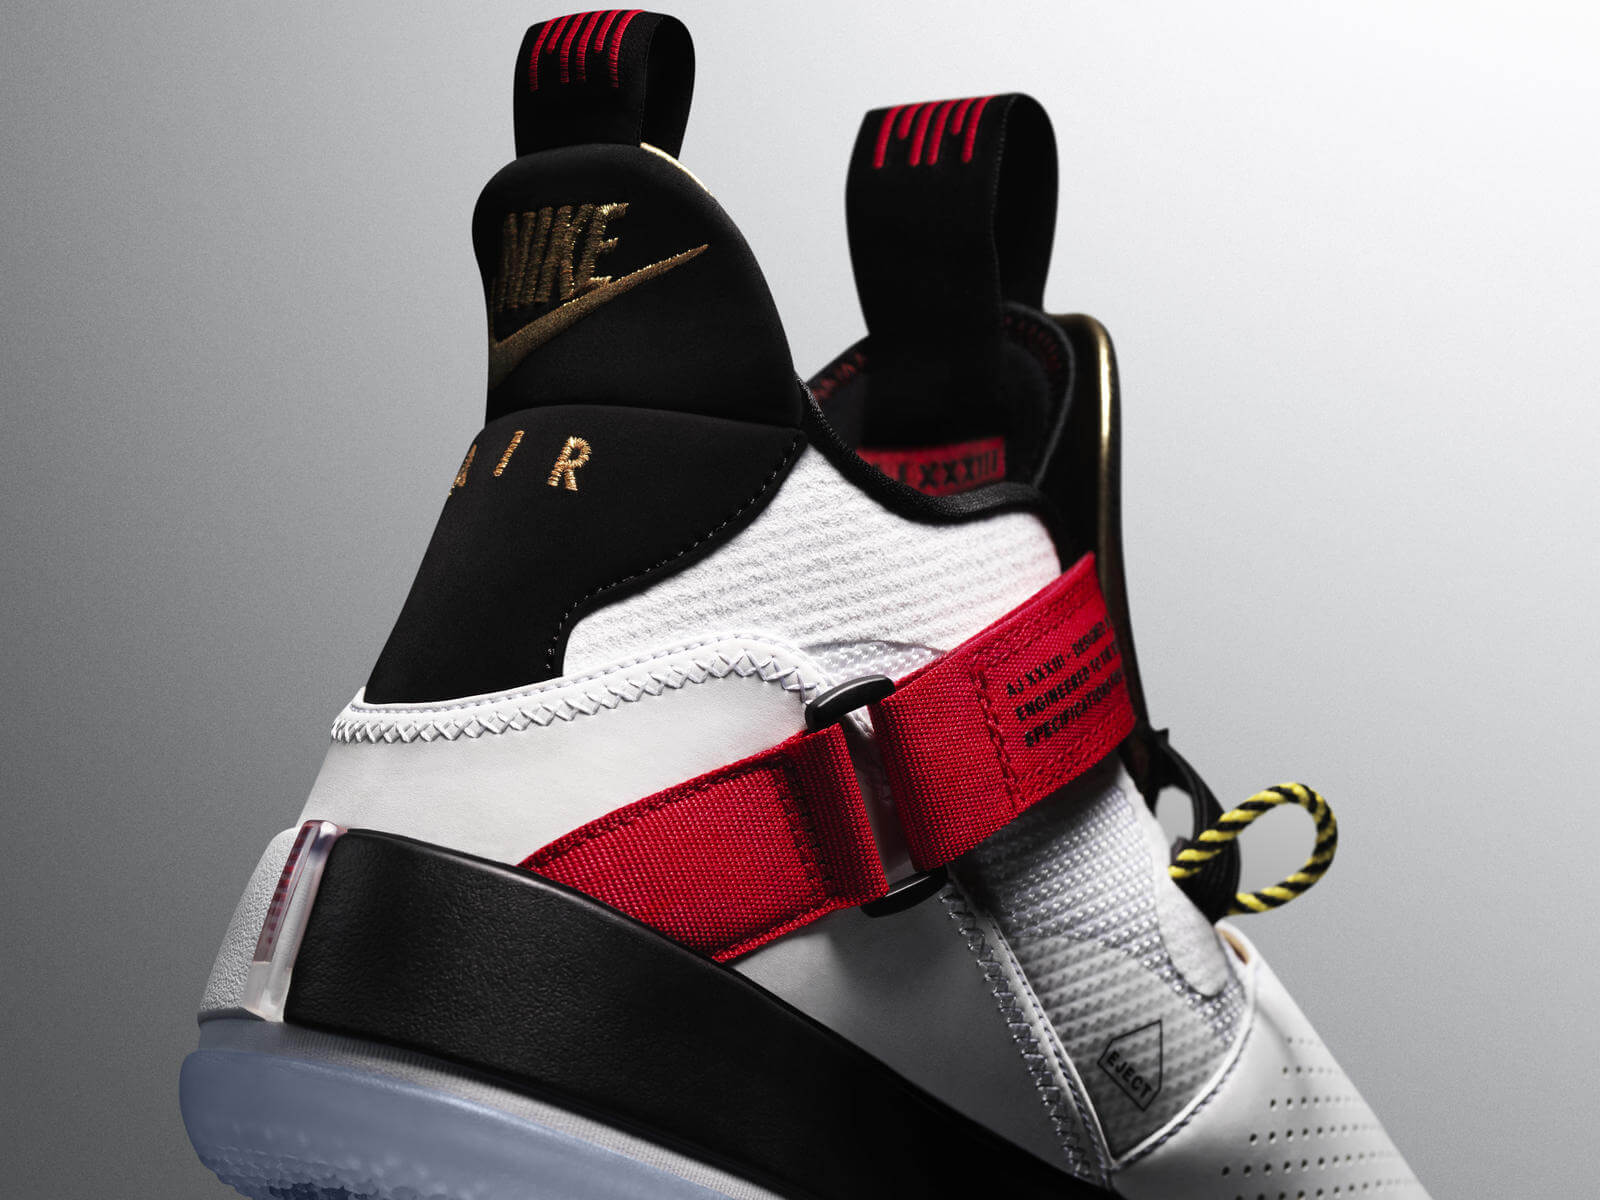 cheaper b9596 f1252 Like all of the Jordan models post the XXX, the XXXIII also features subtle  design cues from the past. The window to the tightening system mimics the  ...